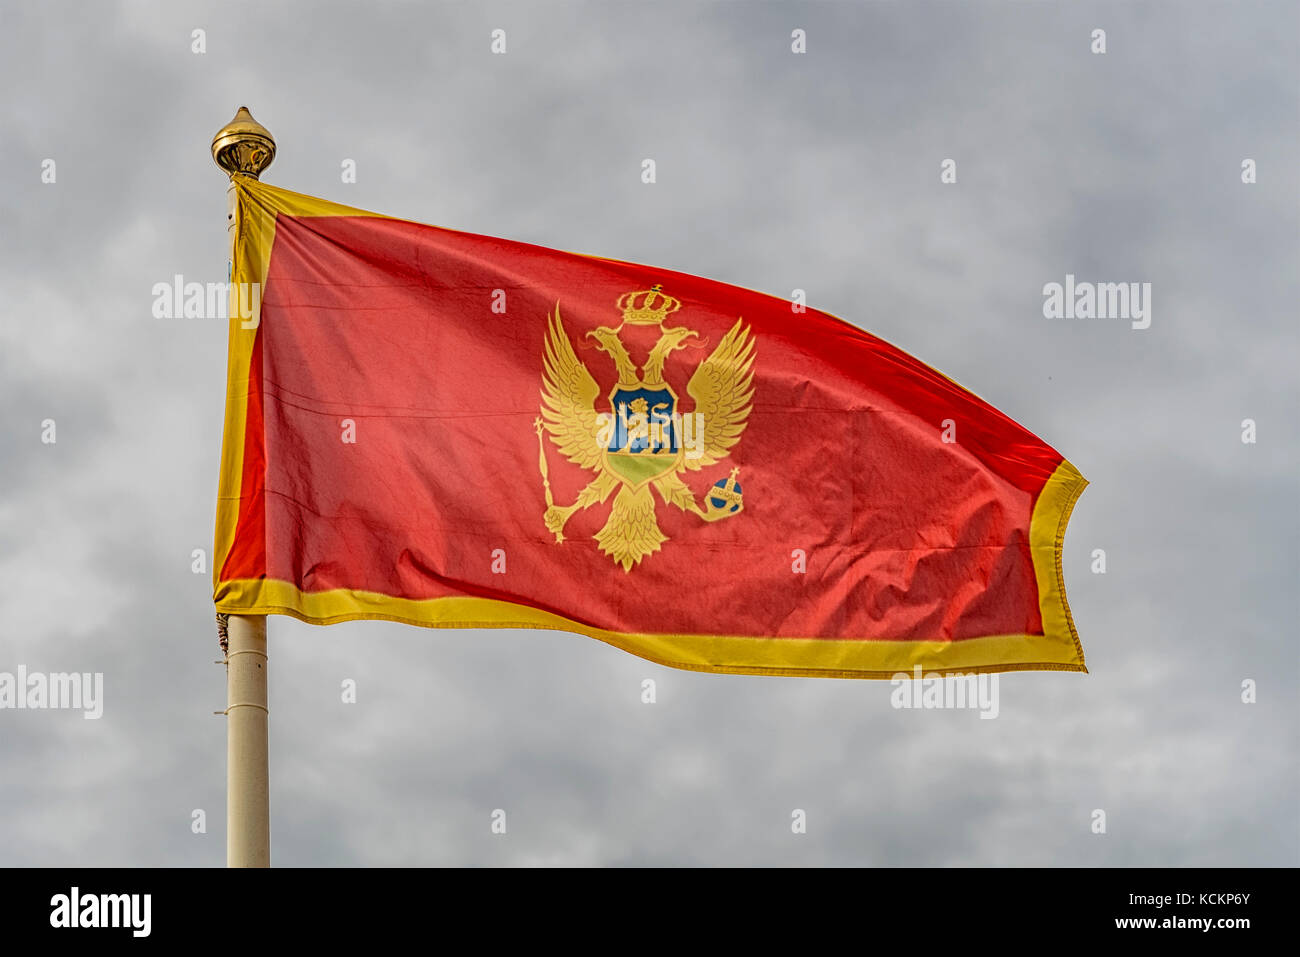 The flag of Montenegro fluttering in the wind against a cloudy sky background. Stock Photo